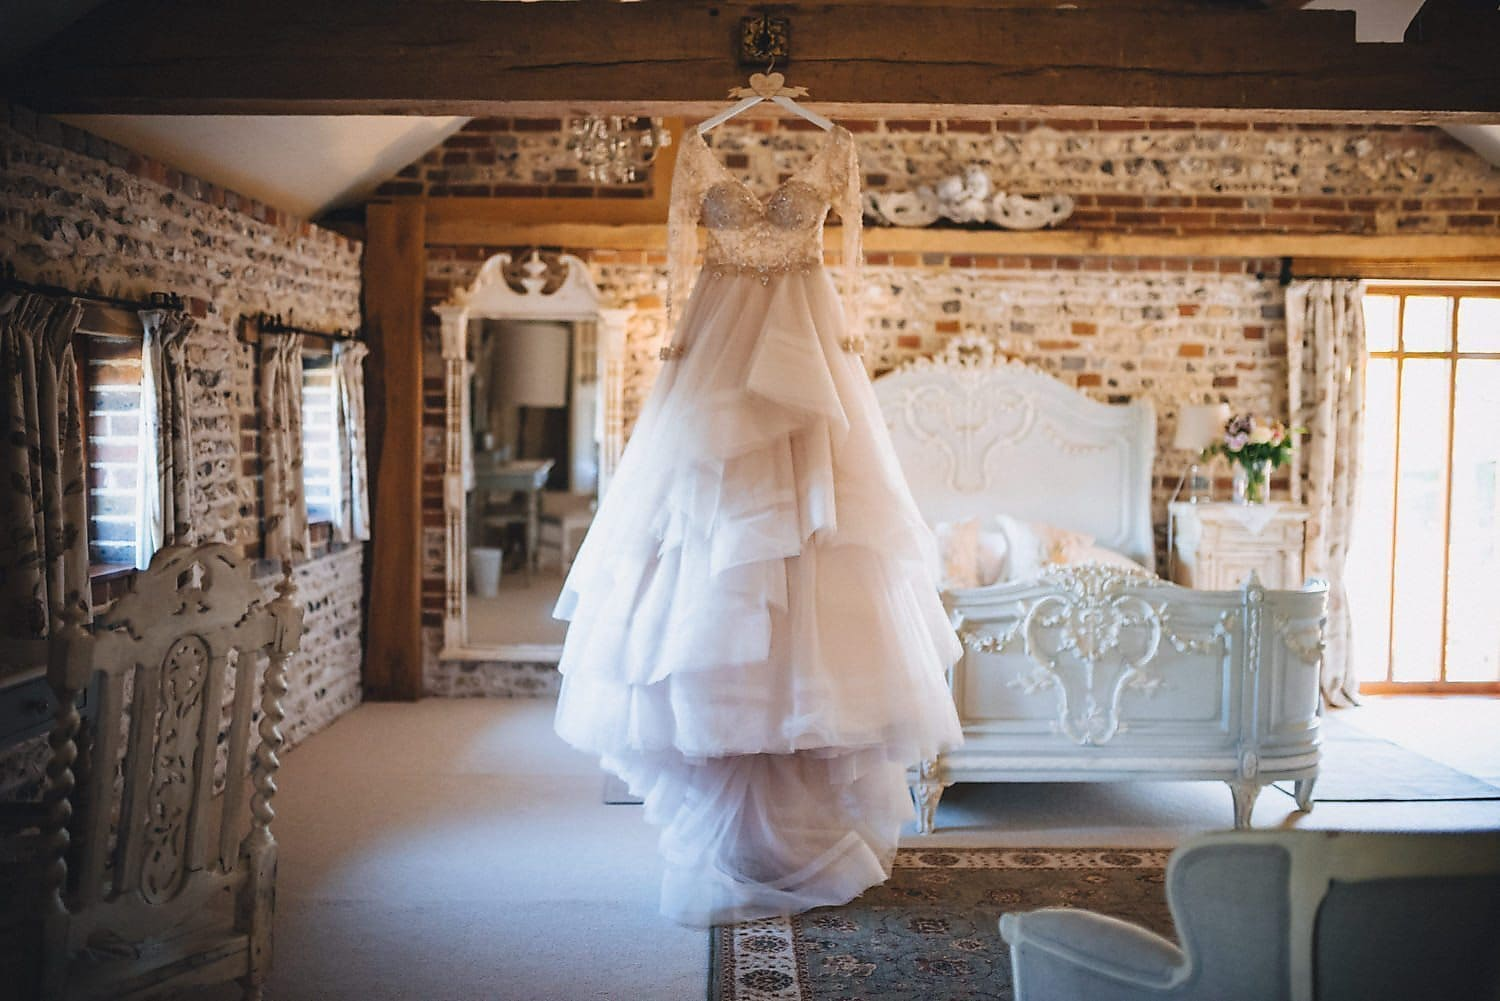 The bride's Martina Liana gown hangs from a beam in the ceiling of the room where she's getting ready.